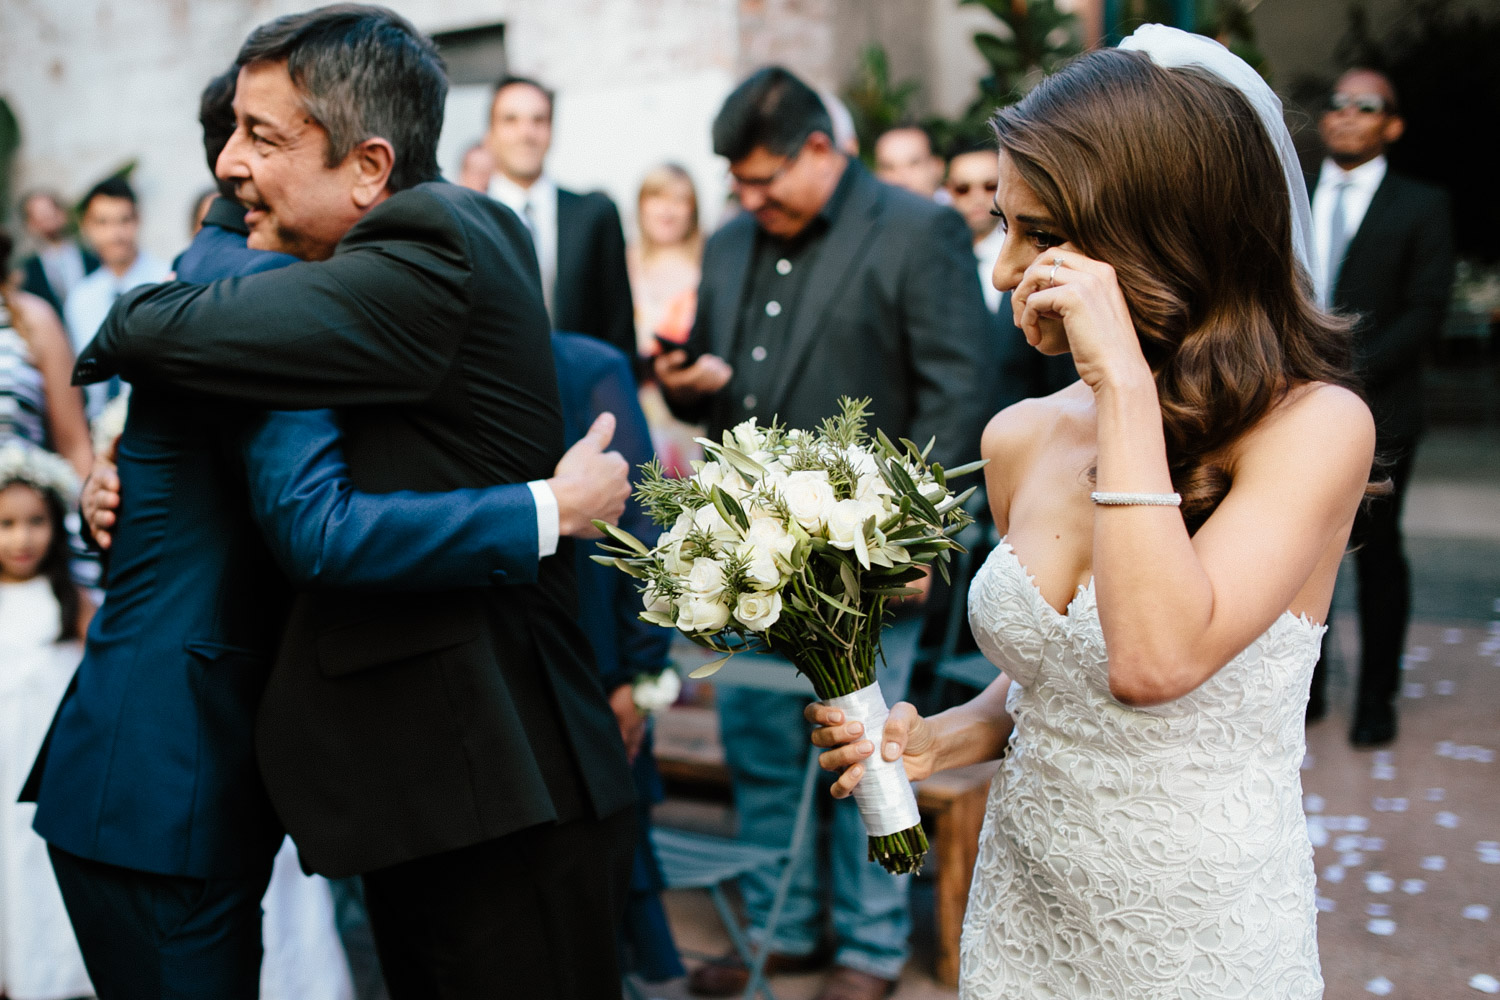 Los Angeles Wedding Photographer, Ace Hotel, Millwick Wedding - The Gathering Season x weareleoandkat 061.JPG